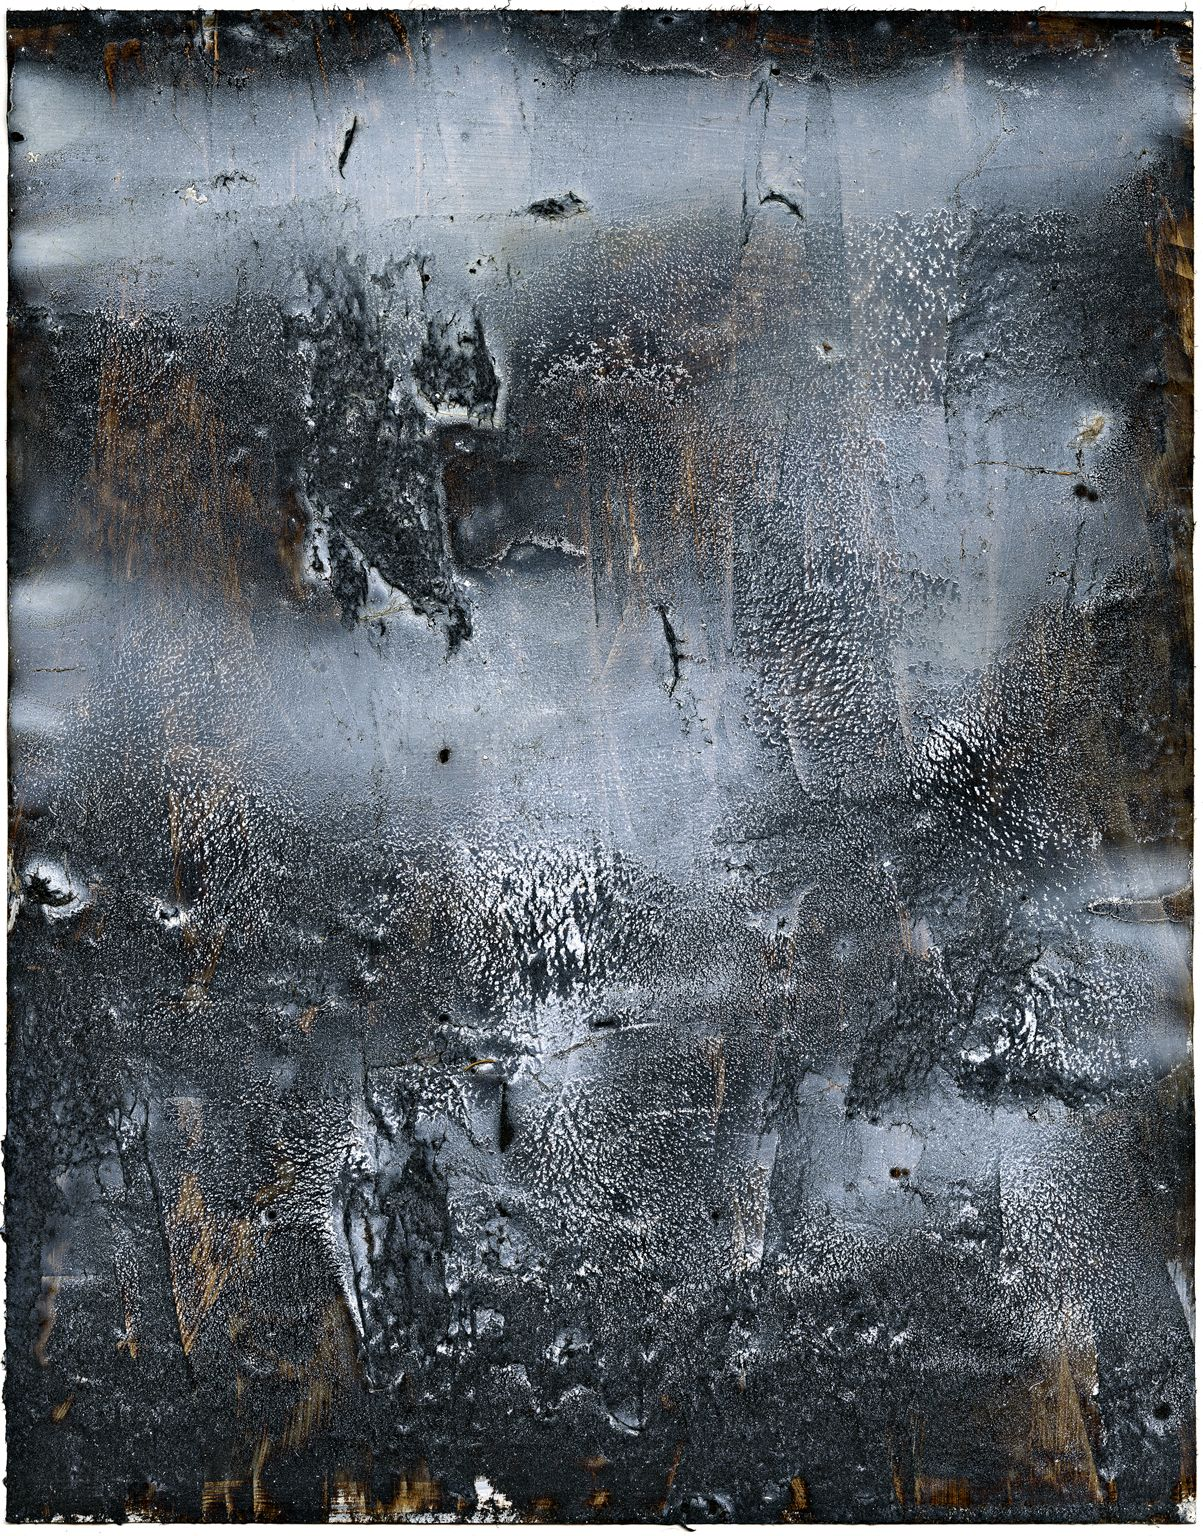 Twilight VII by Rick Lewis - Oil, Plastic Asphalt, Spray